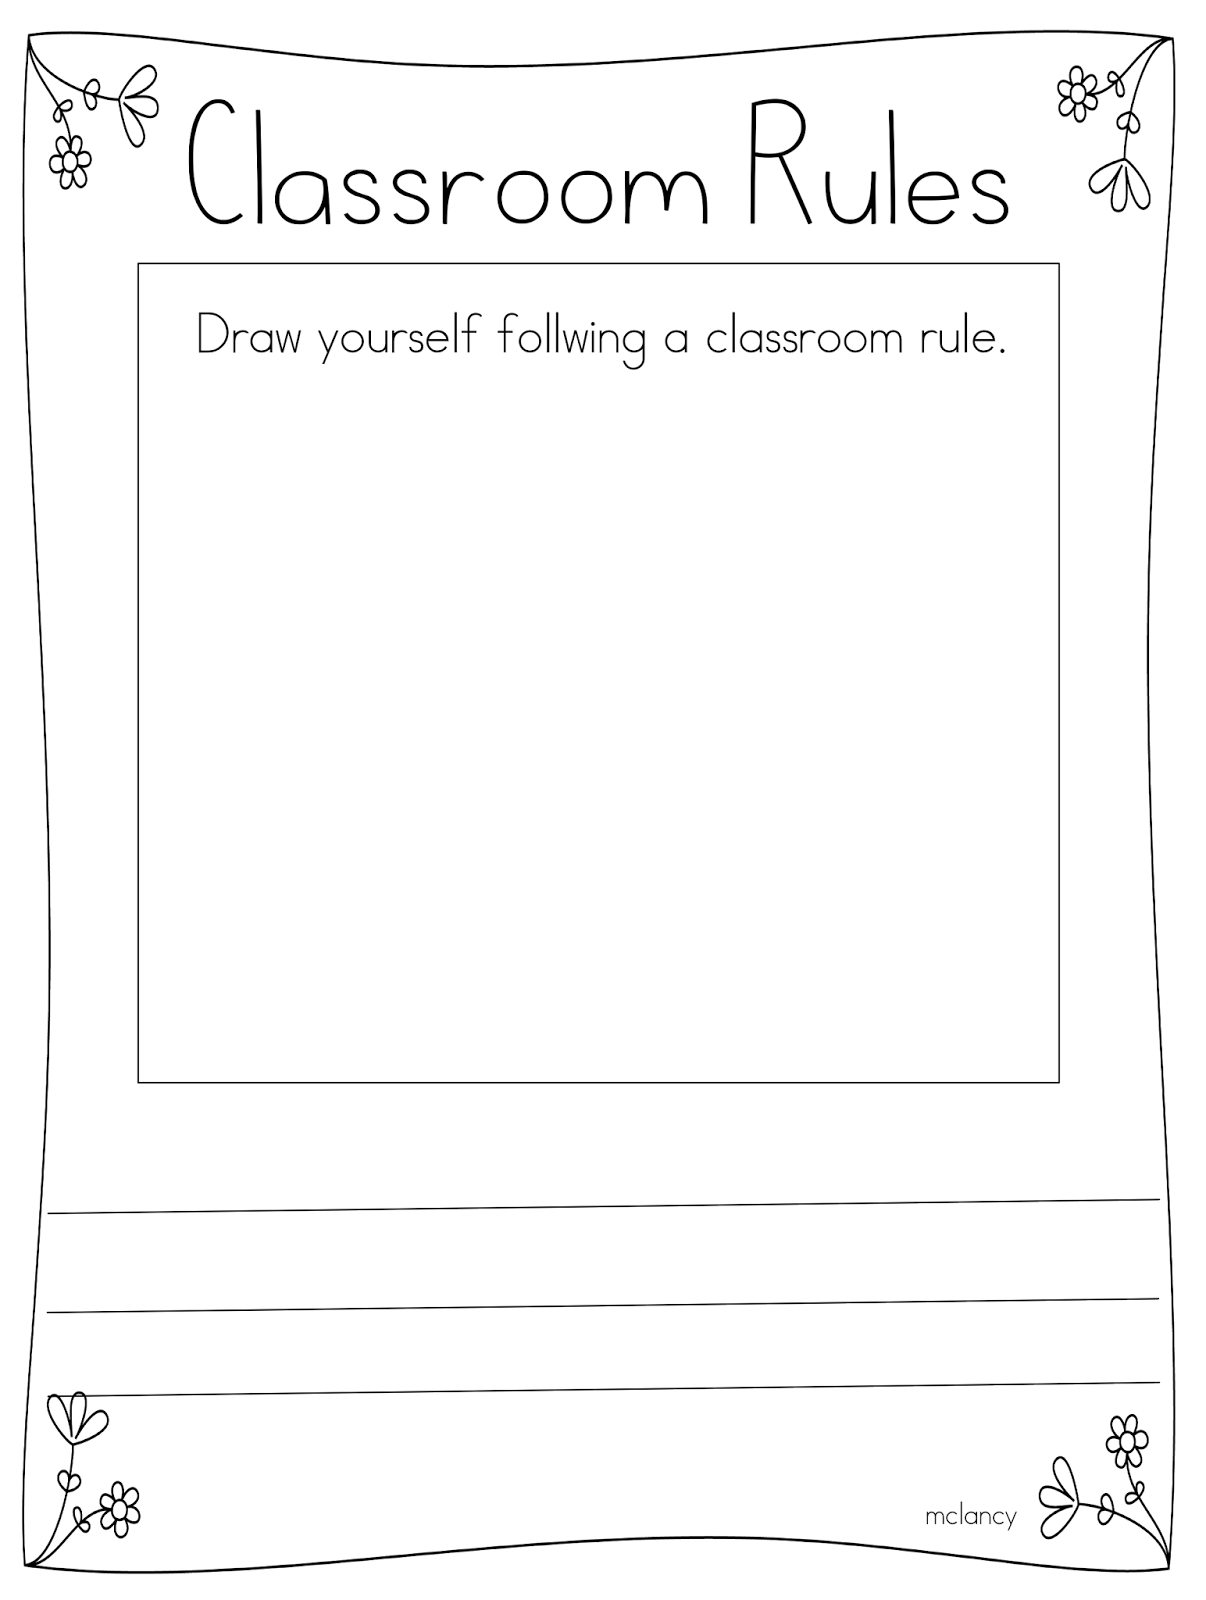 Download Classroom Rules